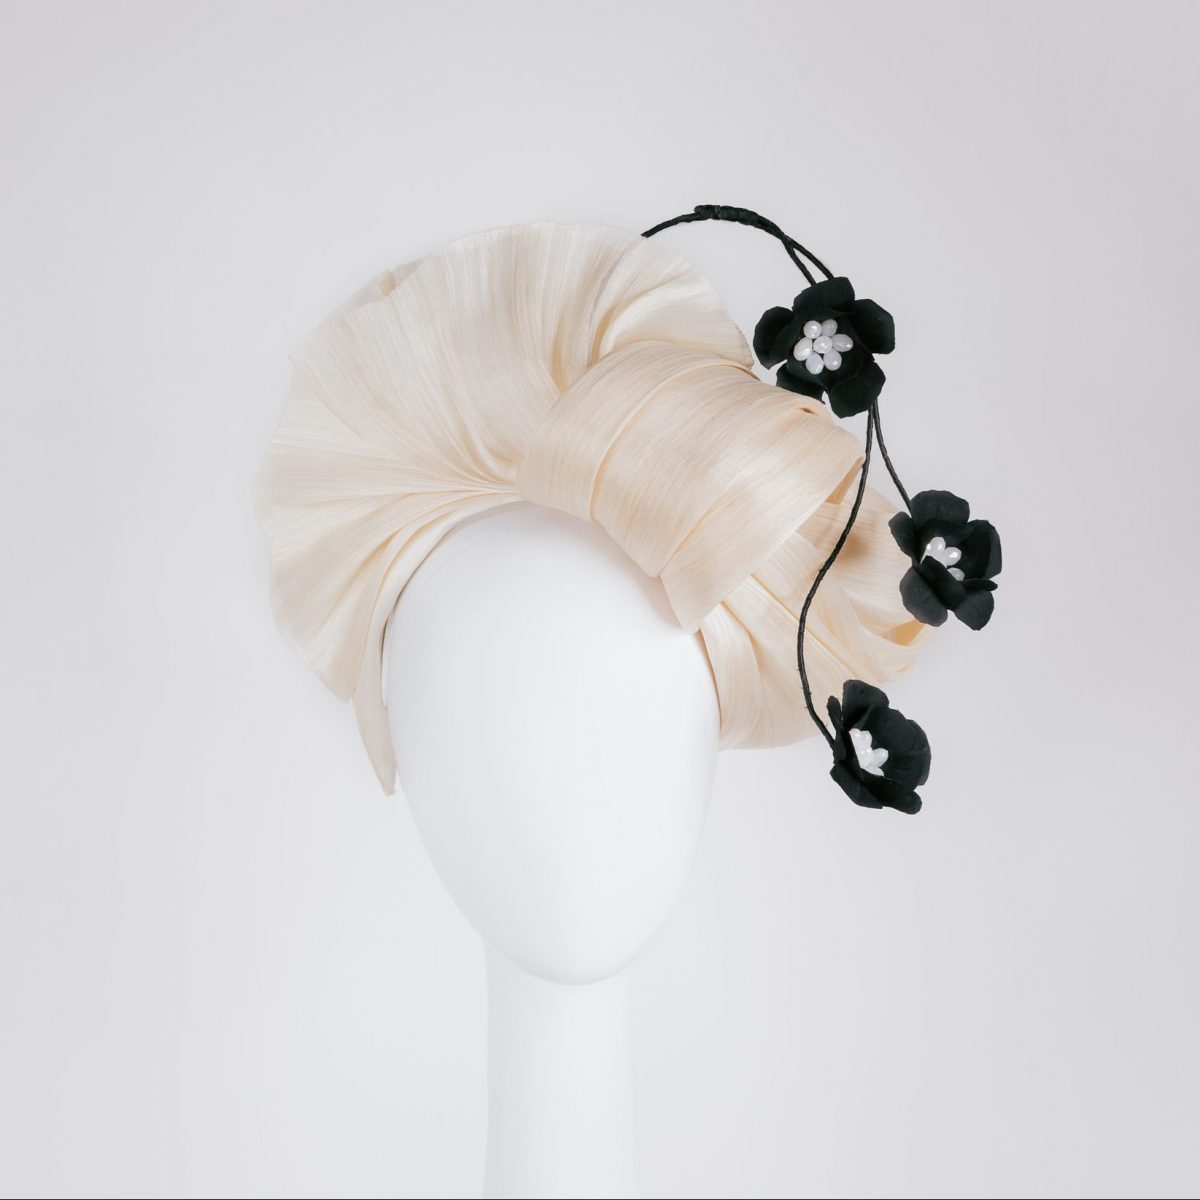 Fashions on the Field headwear for the Melbourne Spring Racing Carnival , Melbourne Cup, Oaks Day